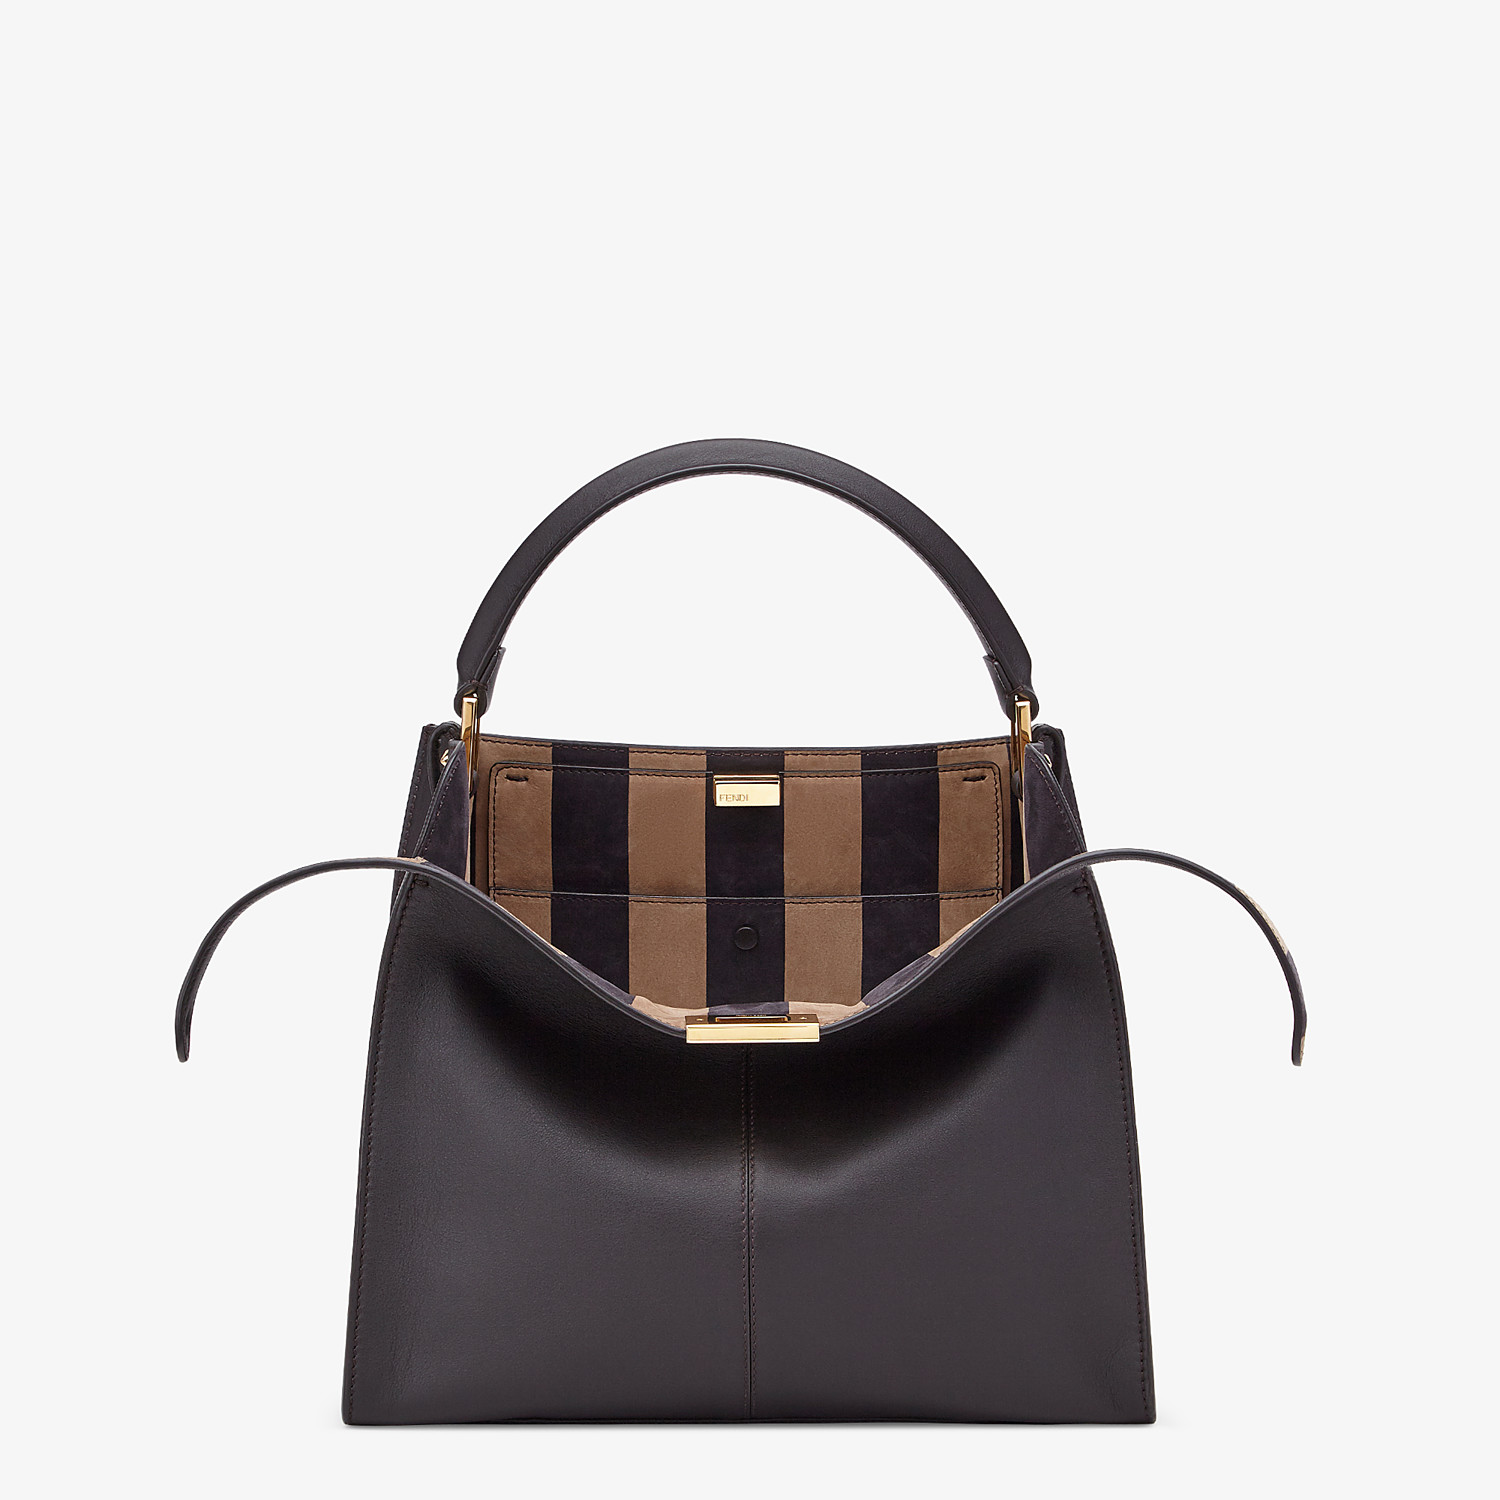 FENDI PEEKABOO X-LITE MEDIUM - Borsa in pelle marrone - vista 1 dettaglio